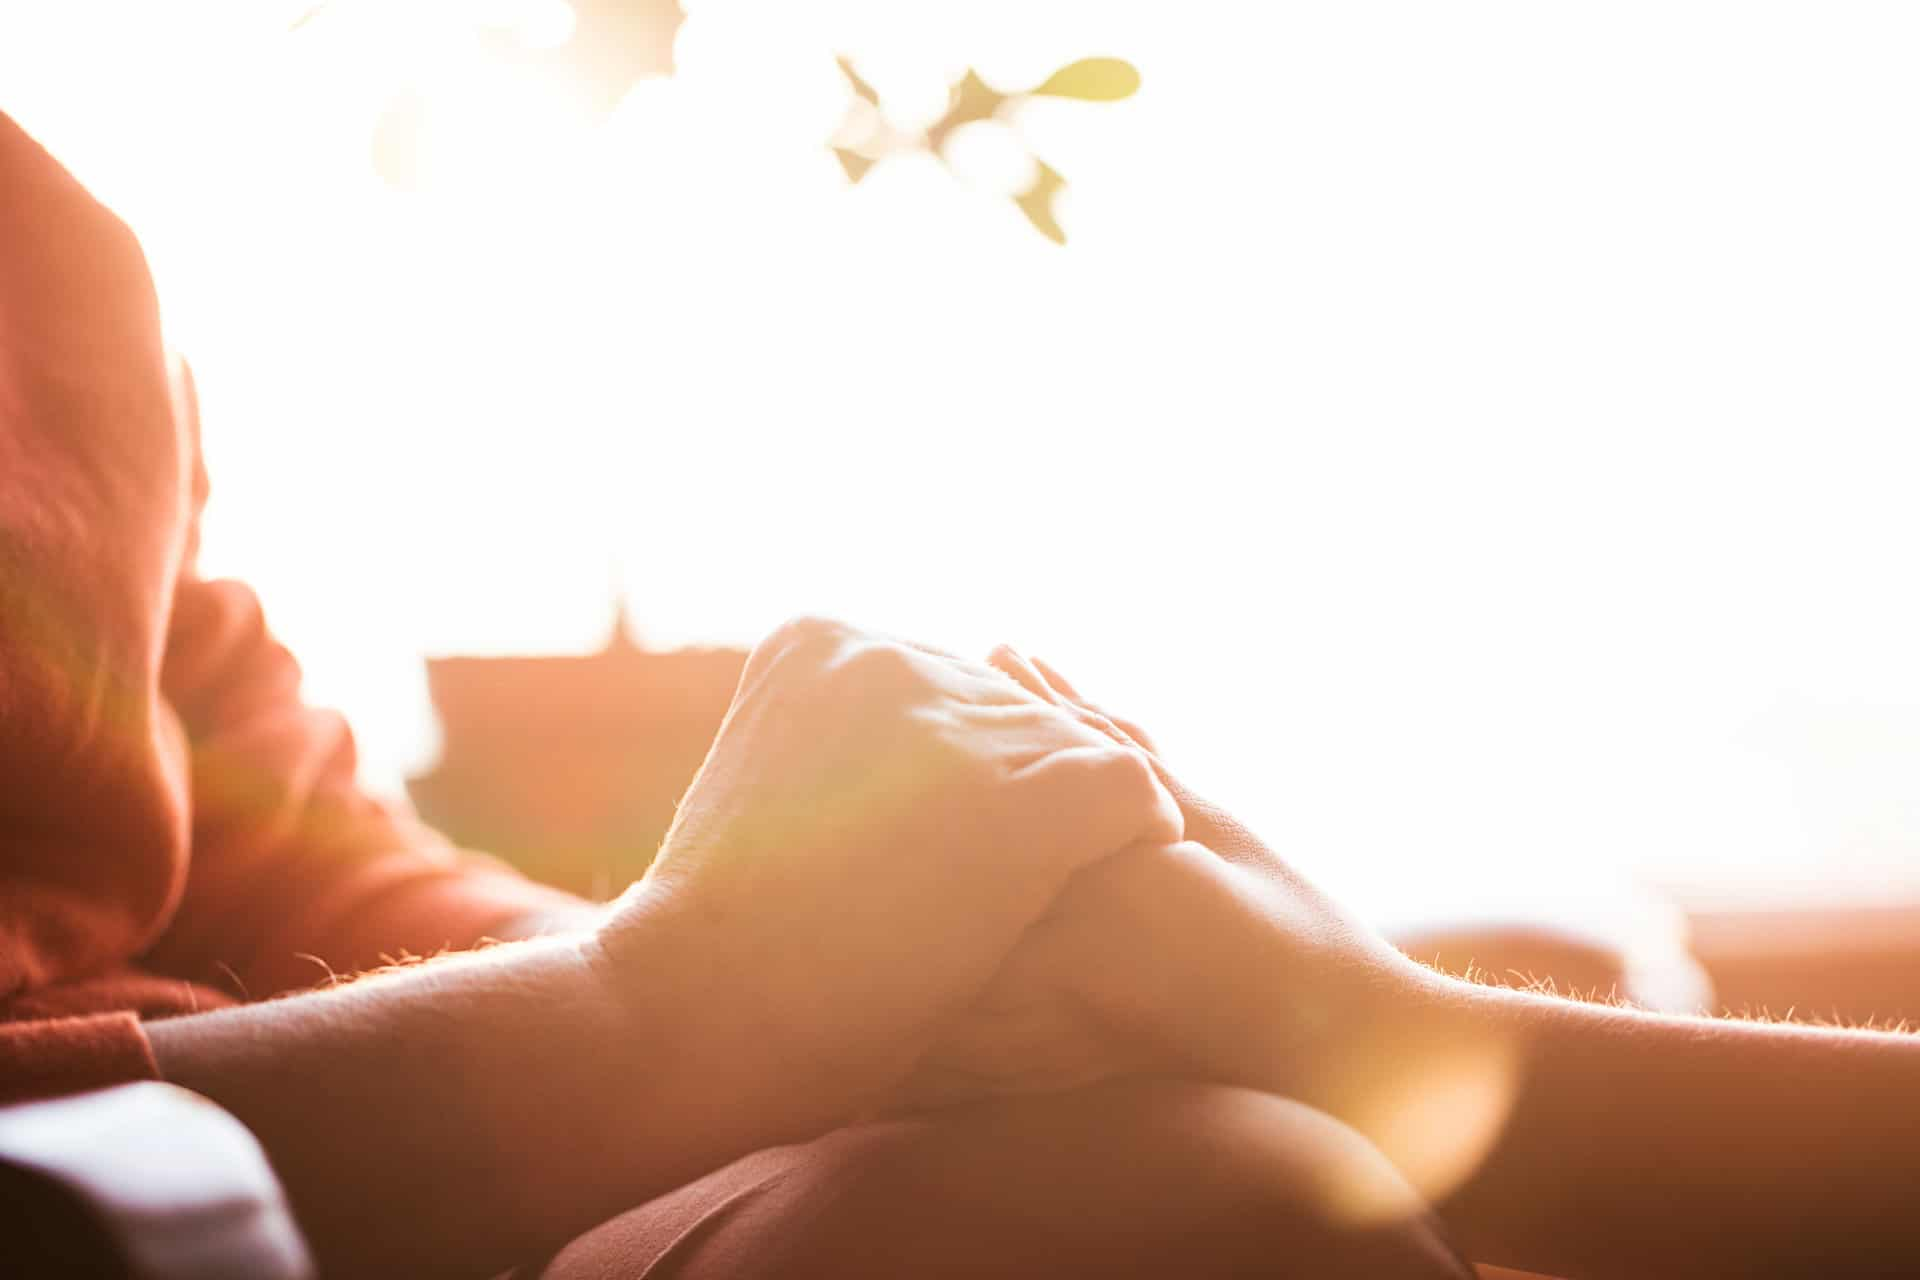 Close-up image of two people holding hands in a room with bright sunlight filtered through the window